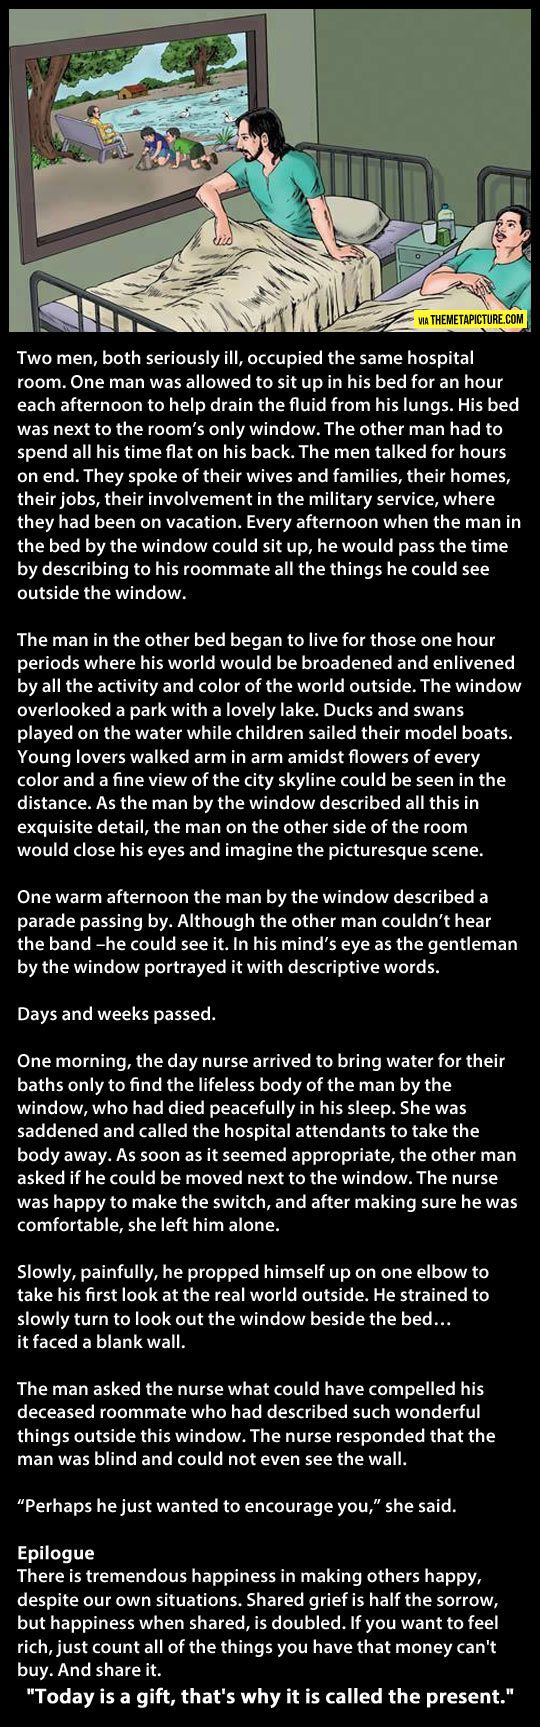 This is amazing